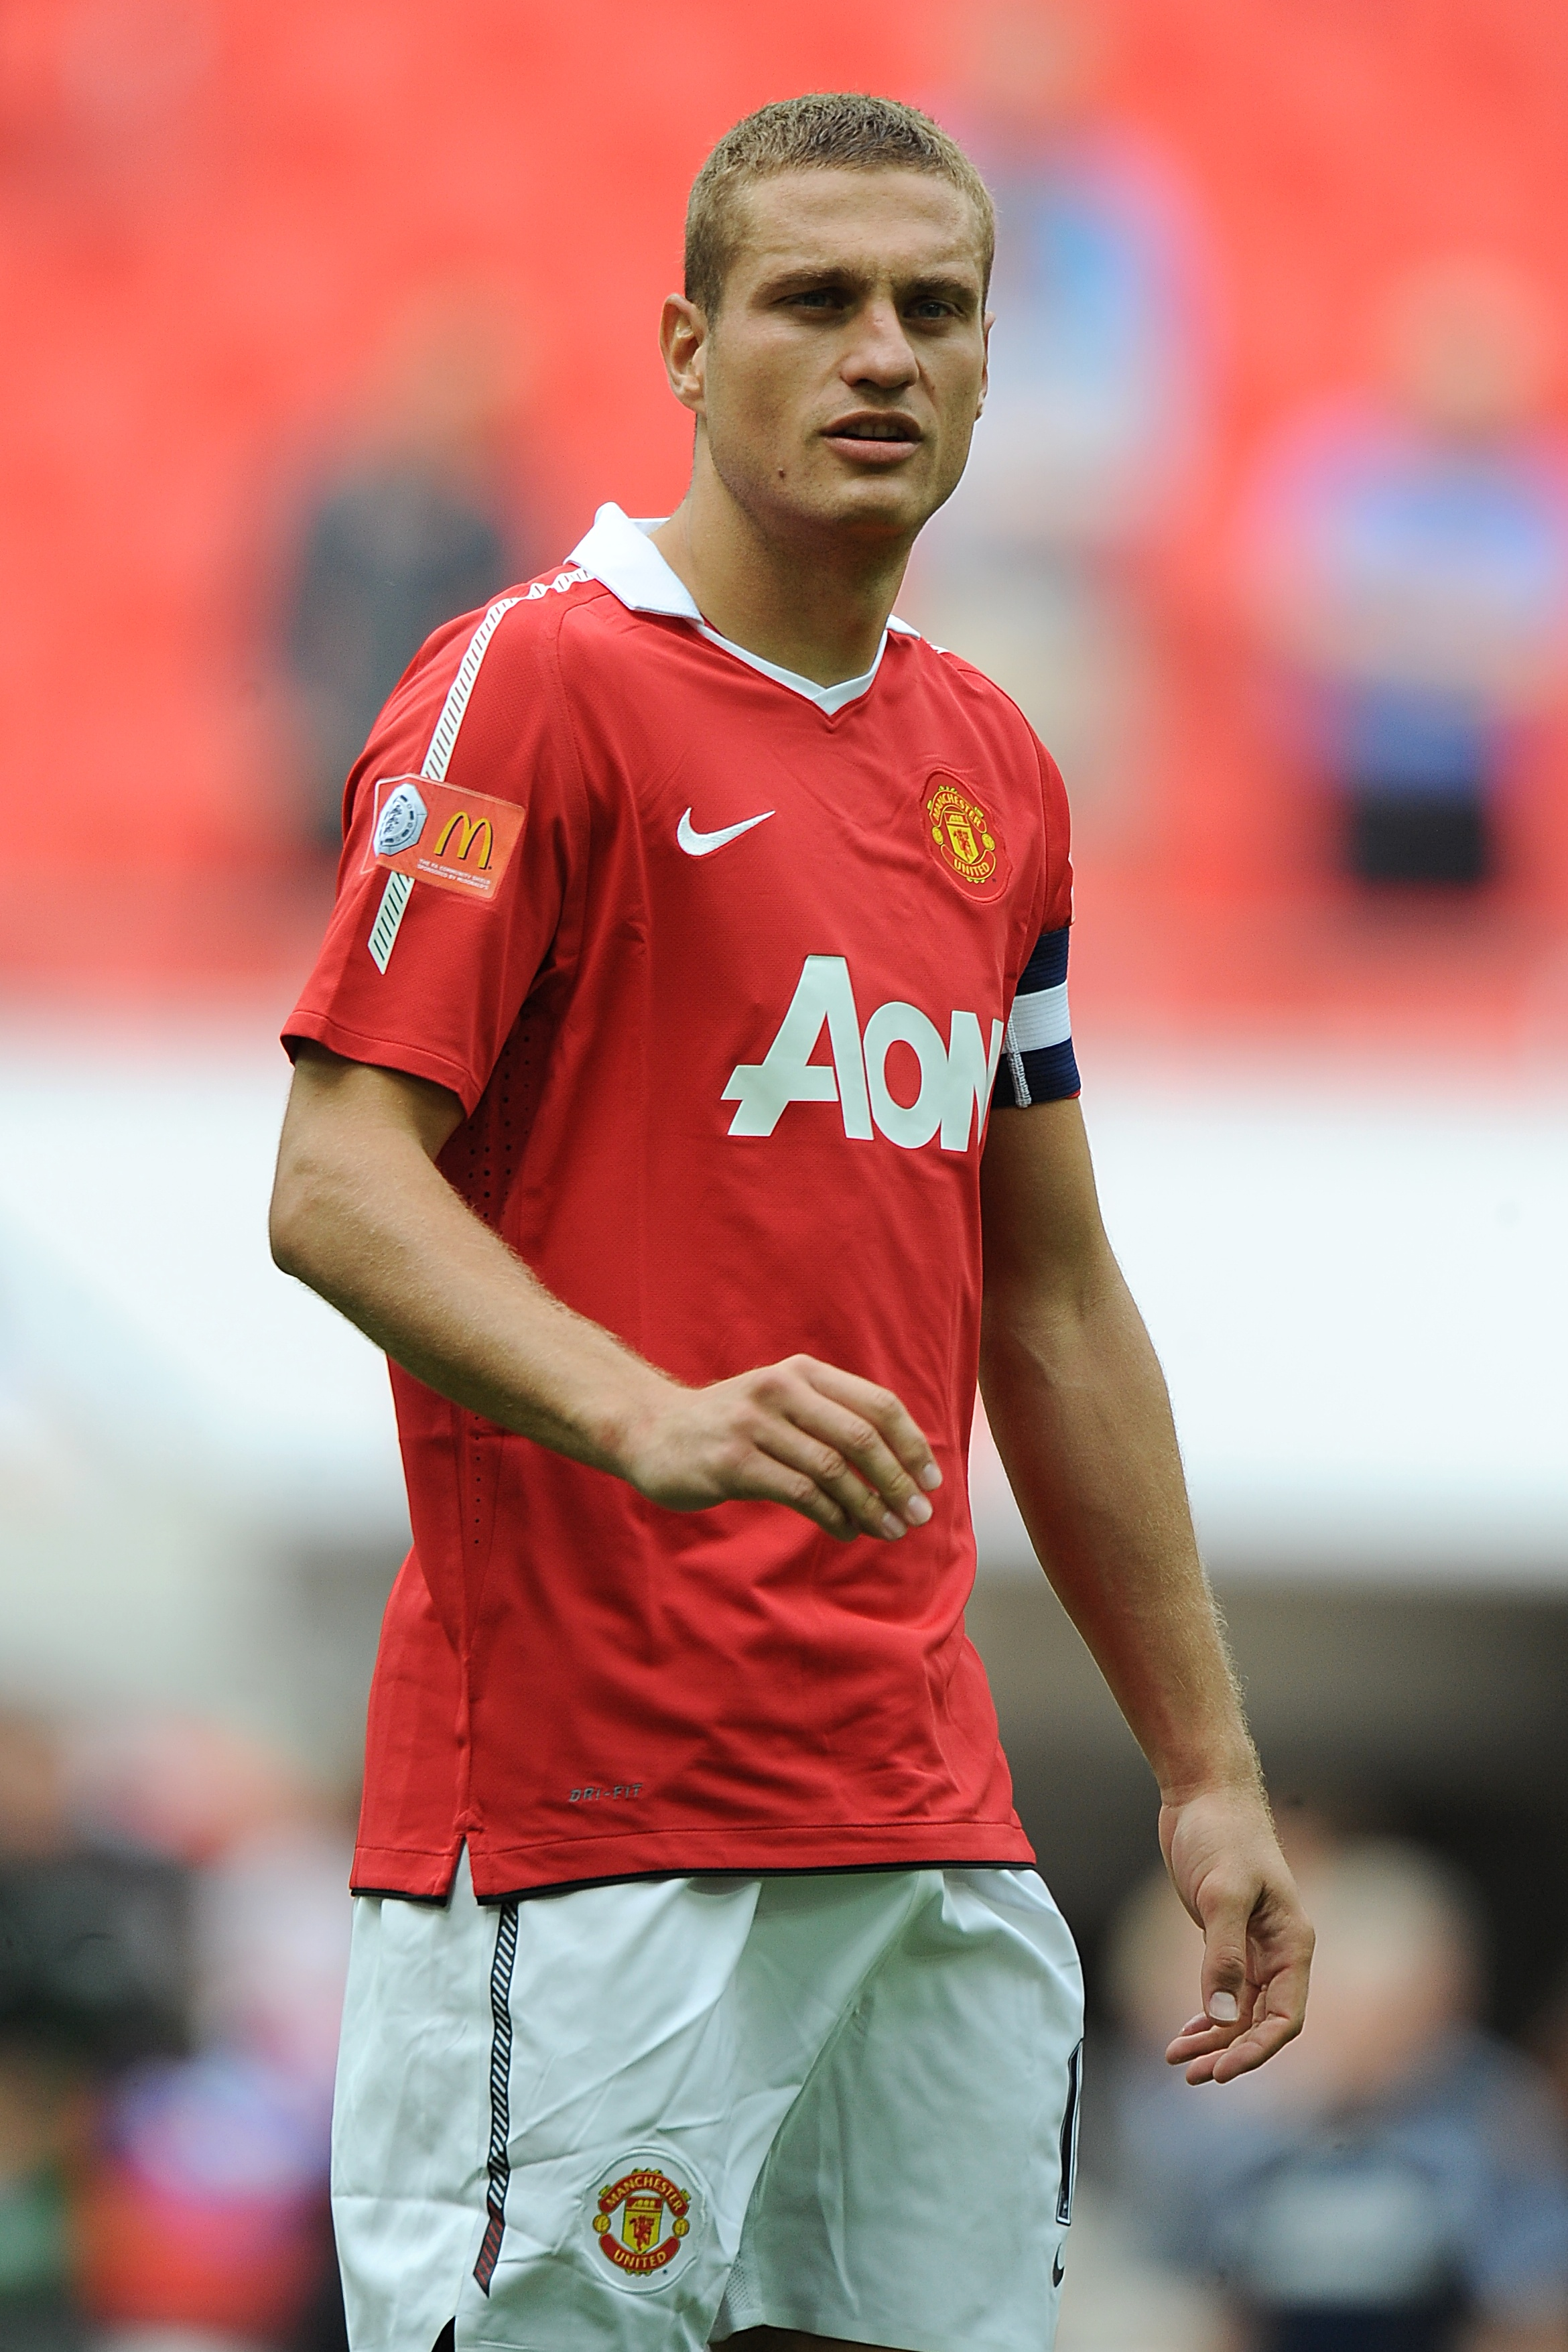 Nemanja Vidic photo 8 of 12 pics wallpaper photo